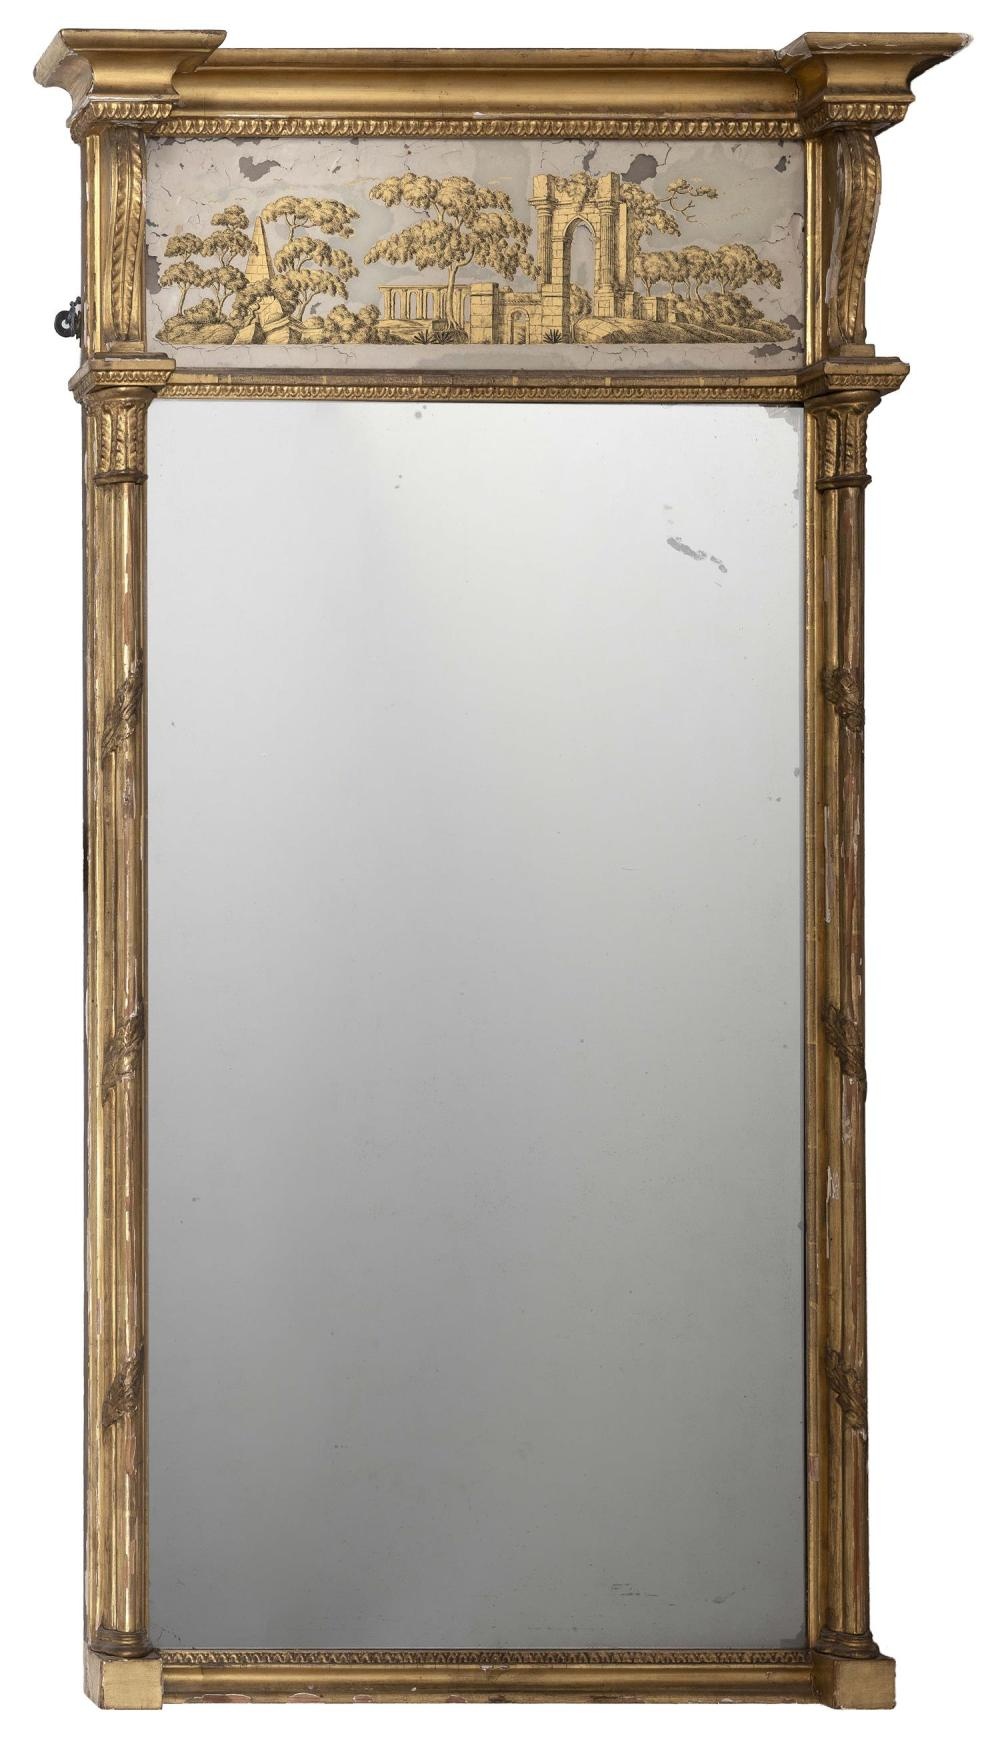 """FEDERAL-STYLE PIER MIRROR Reverse-painted upper tablet depicts classical ruins. Gilt frame. Height 50"""". Width 29.25""""."""